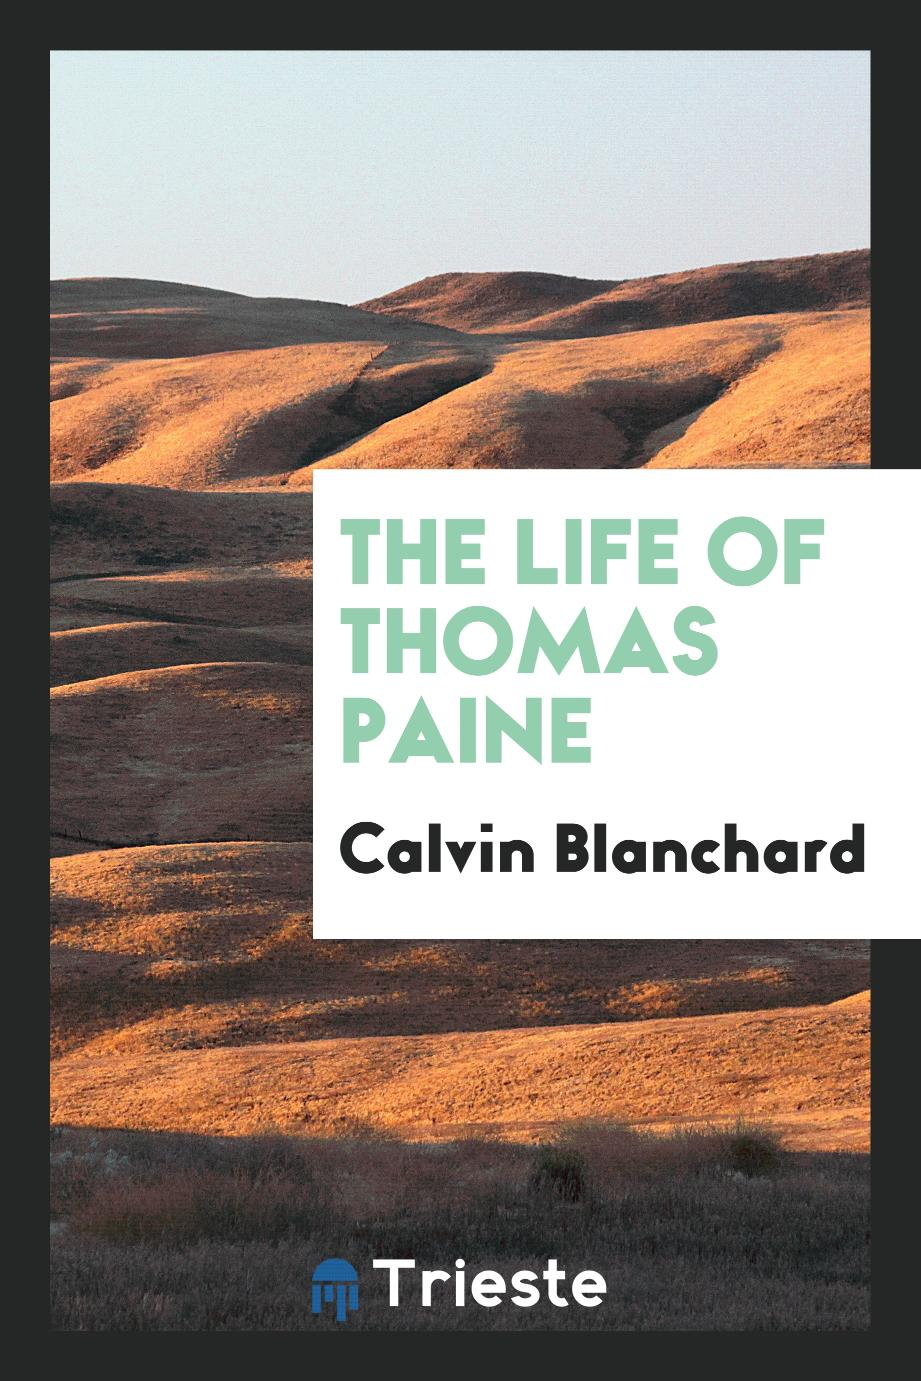 Calvin Blanchard - The Life of Thomas Paine